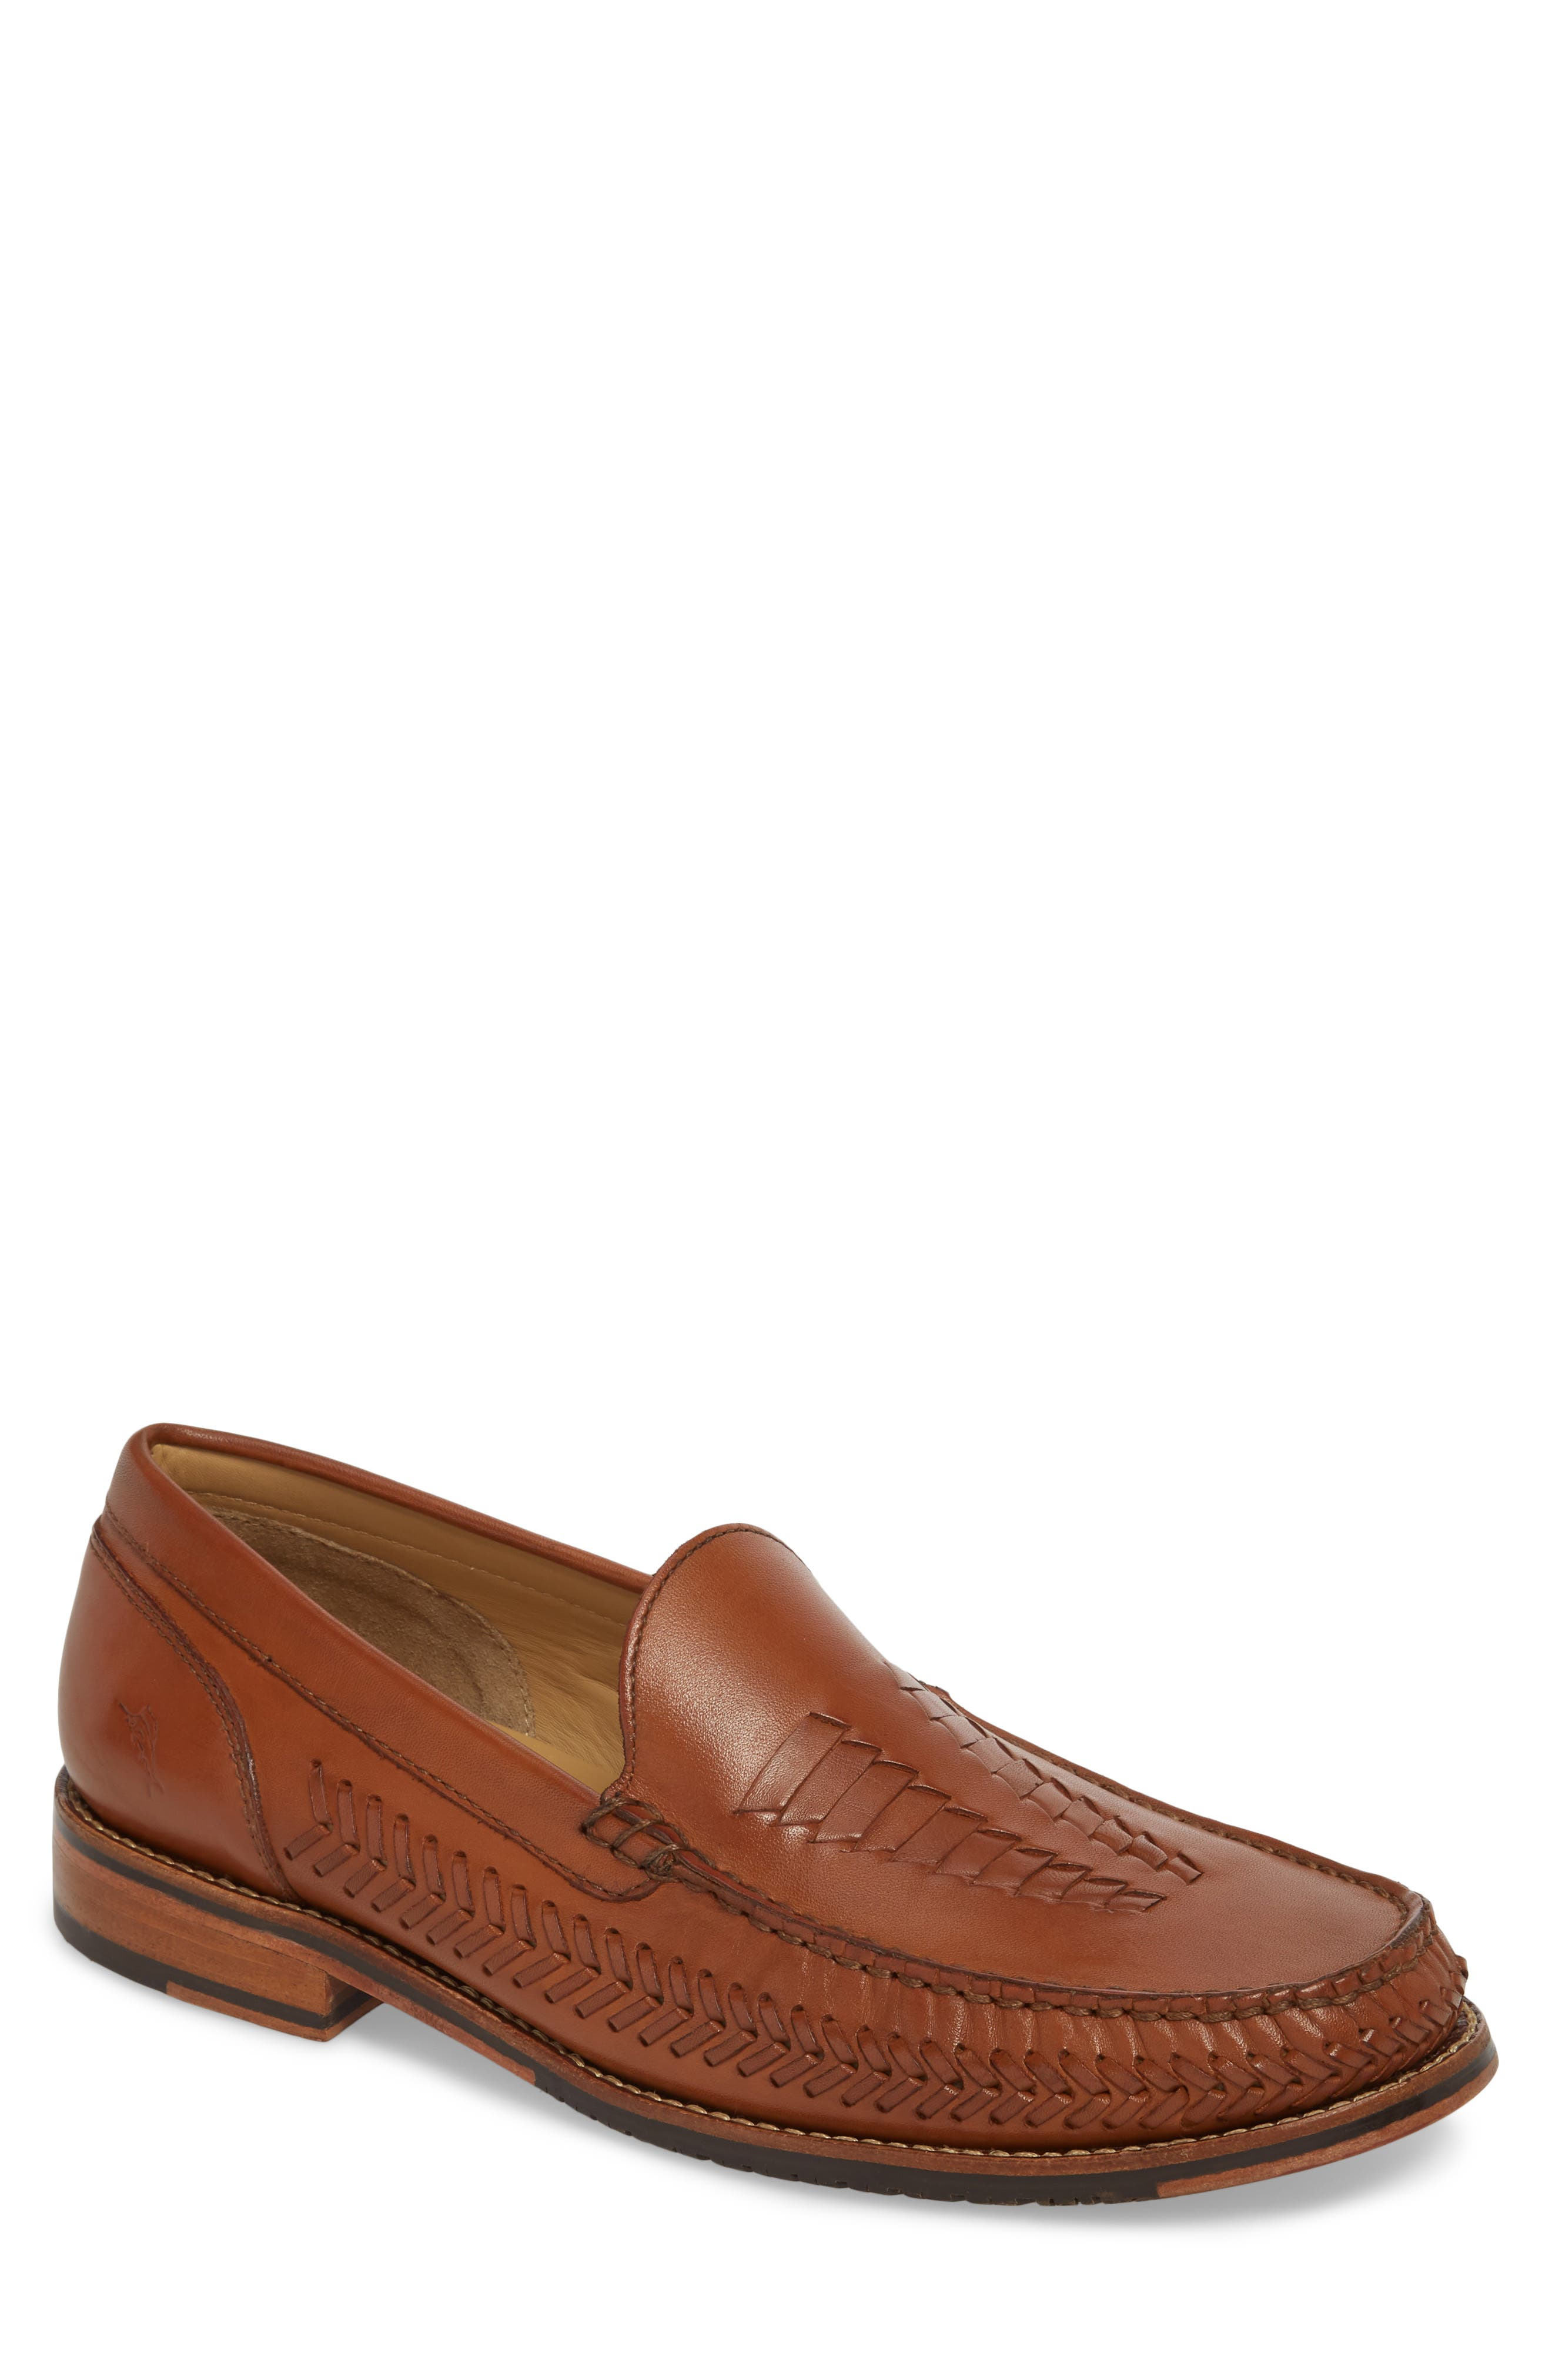 Tommy Bahama Hasslington Woven Venetian Loafer (Men)